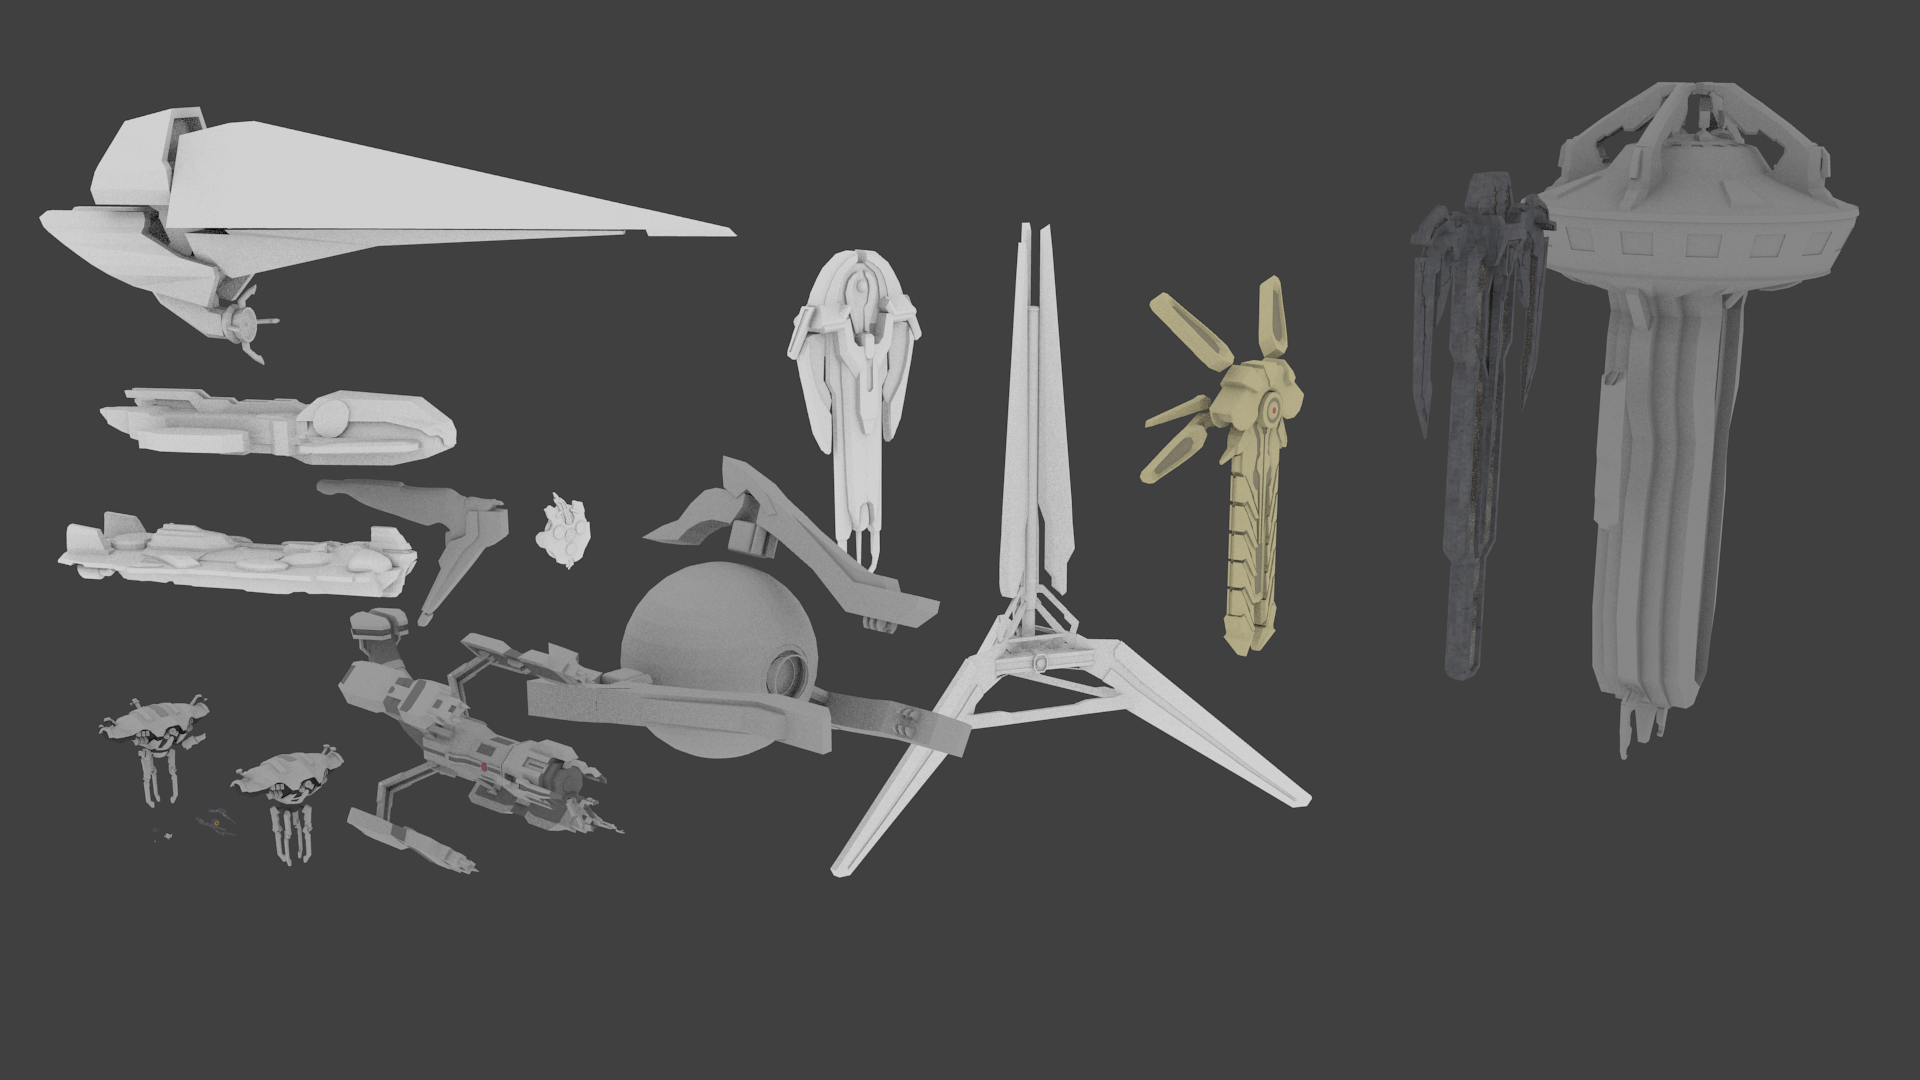 Sookendestroy has been exploring Forerunner sentinel and ship design.